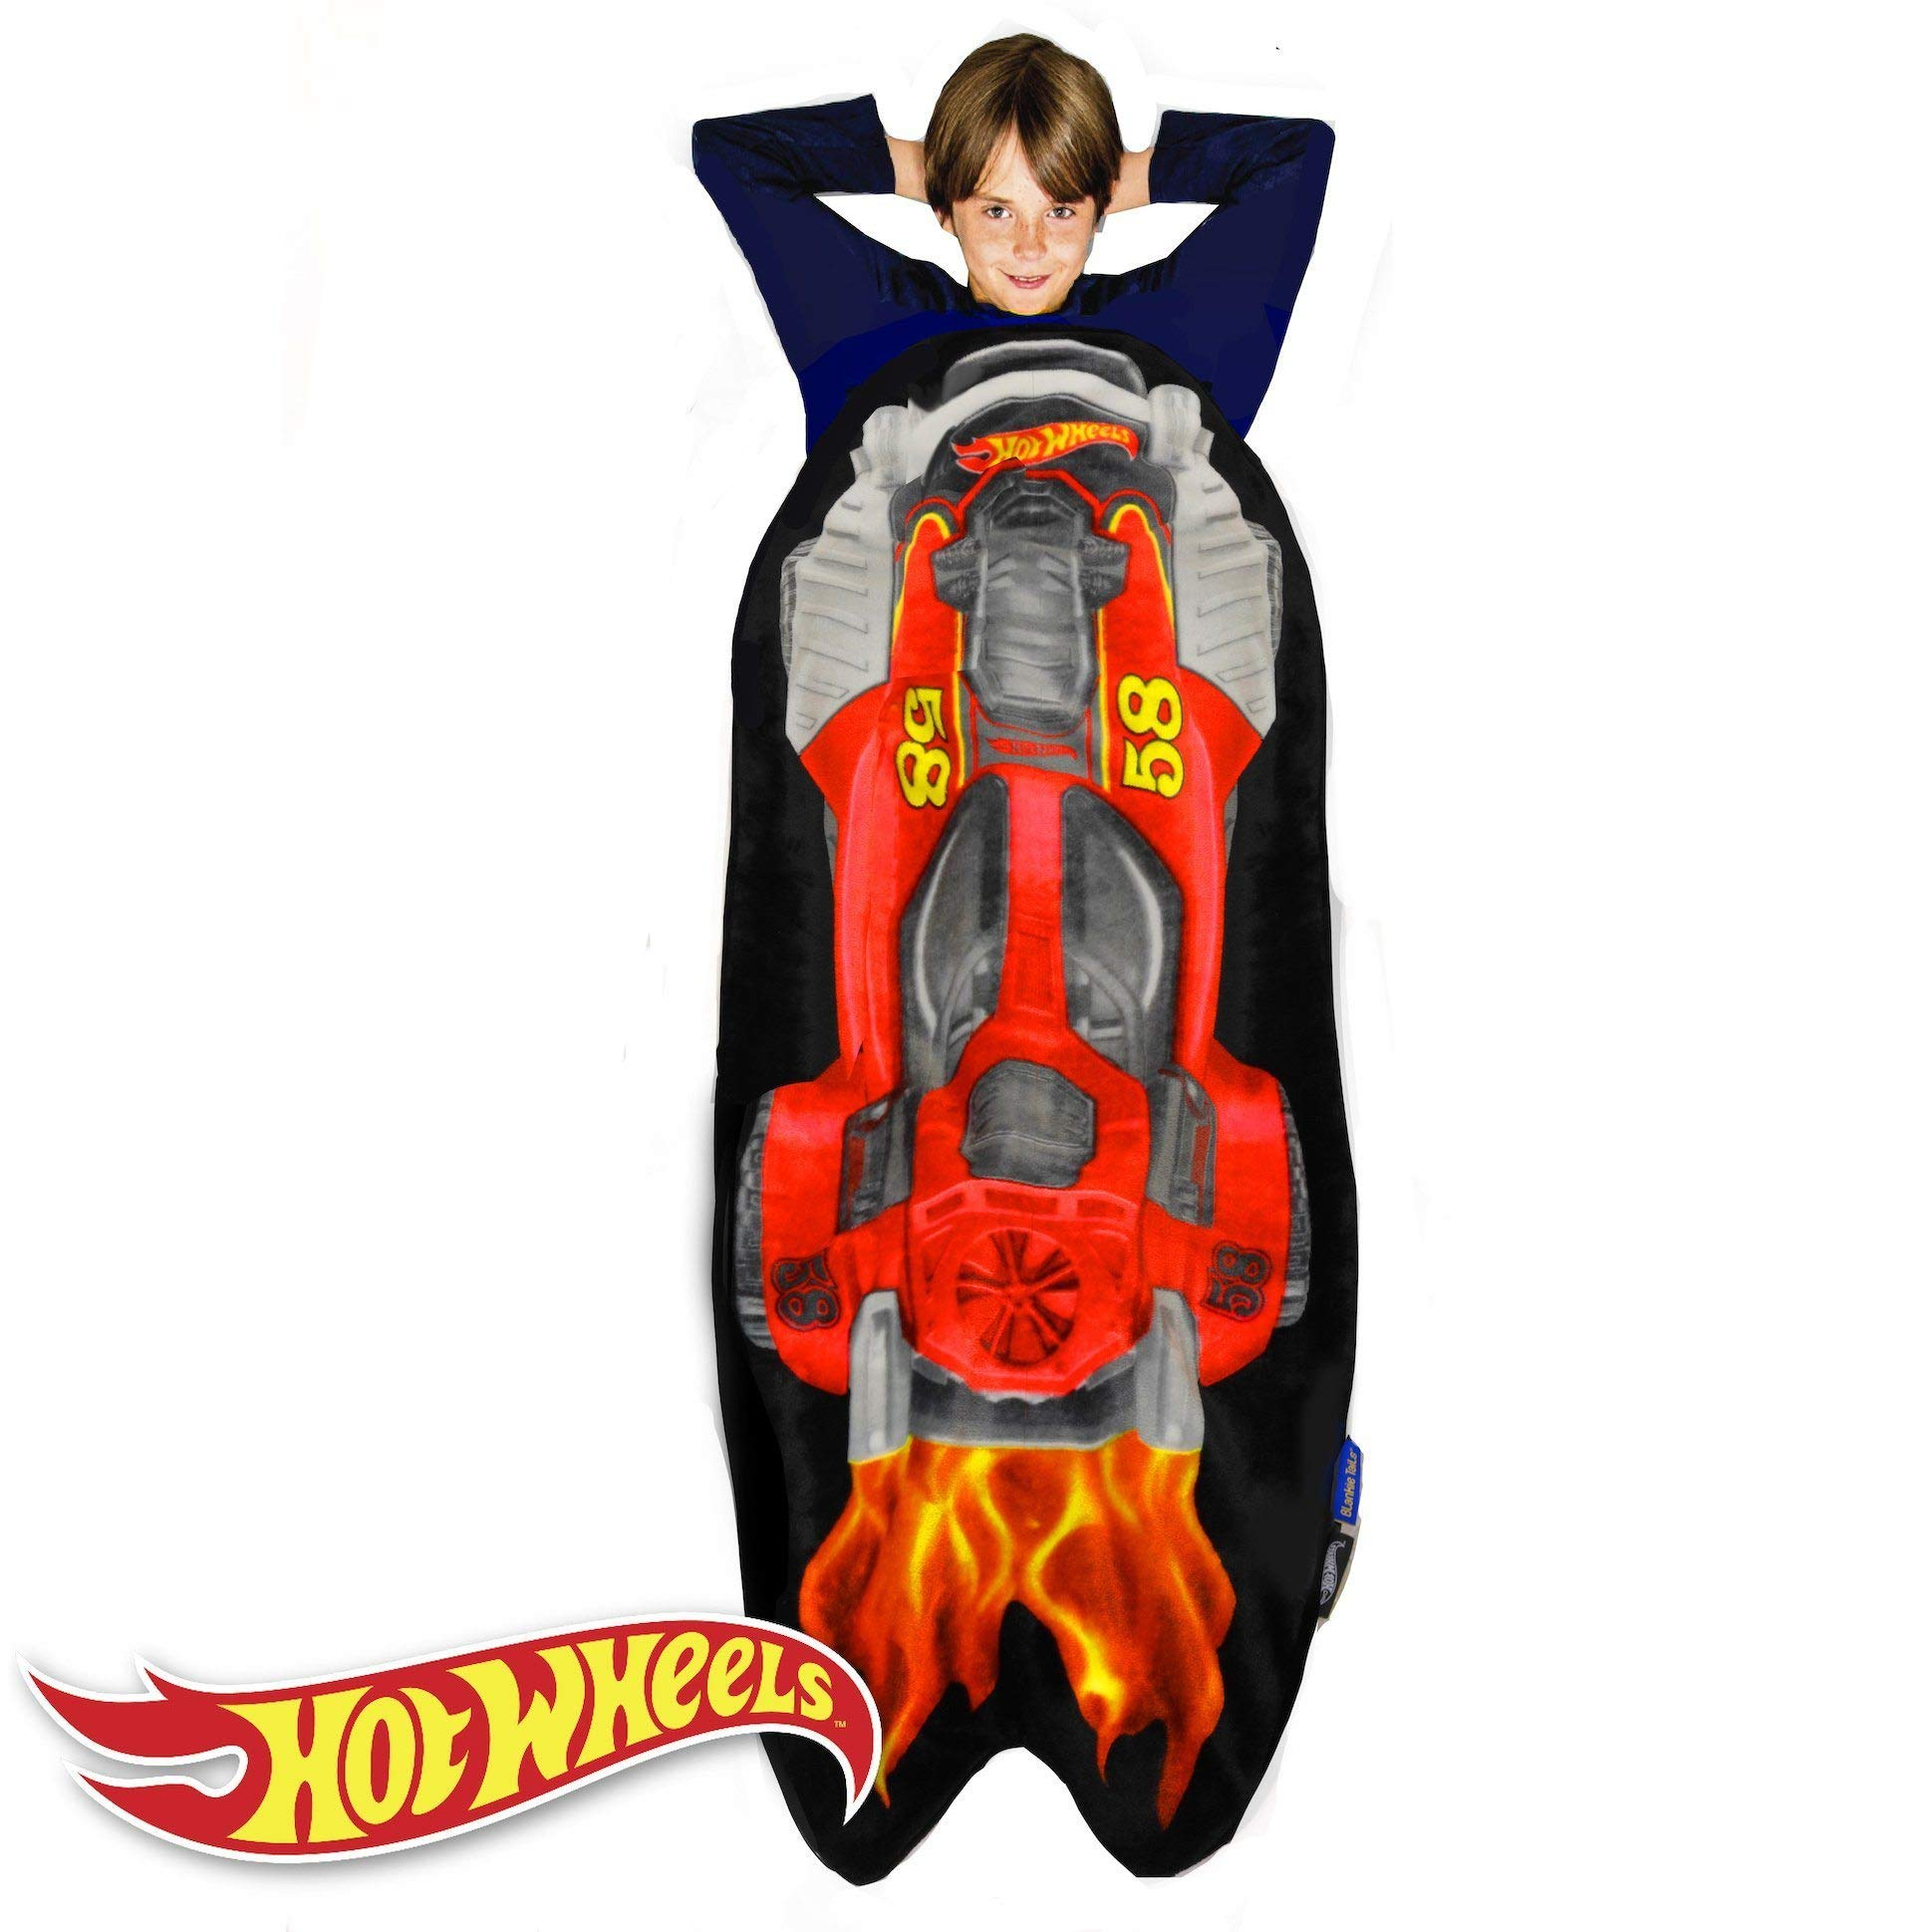 Blankie Tails Hot Wheels Car Shaped Blanket Super Soft-Double Sided Minky Fleece Sized for Kids- Climb Inside This Cozy Wearable Blanket by Blankie Tails